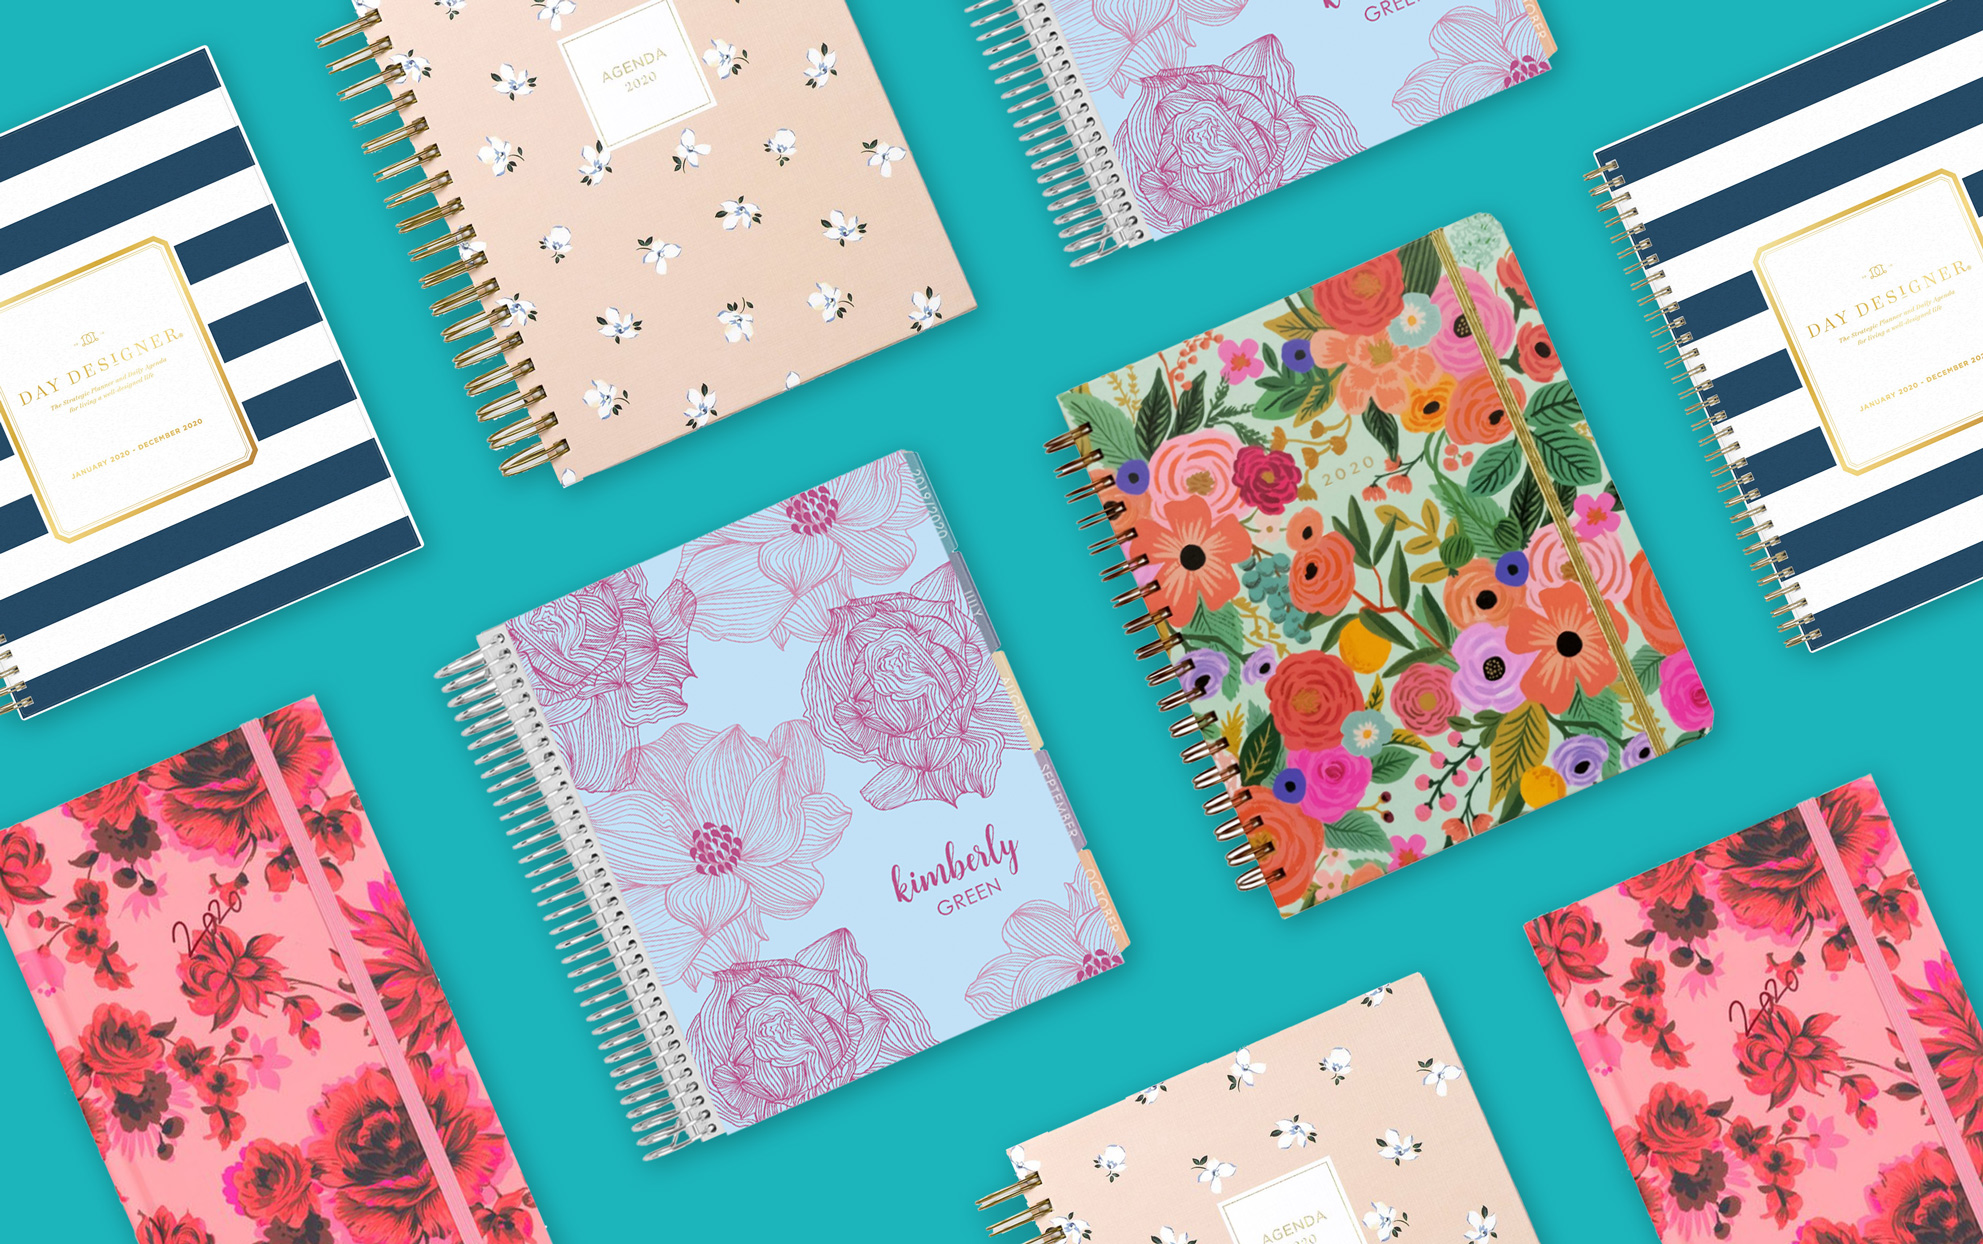 several floral 2020 planners on a teal background